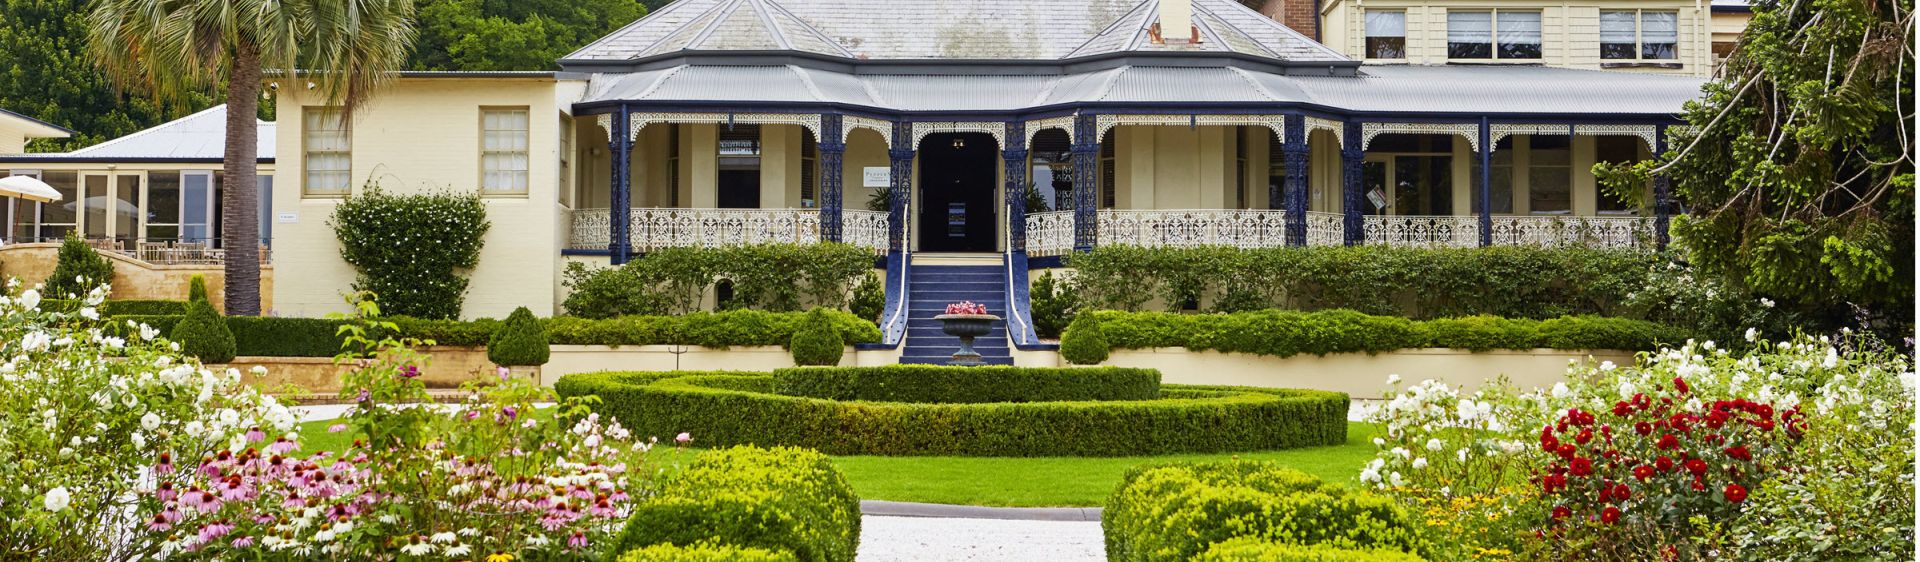 The elegant entrance to Peppers Craigieburn in Bowral, Southern Highlands